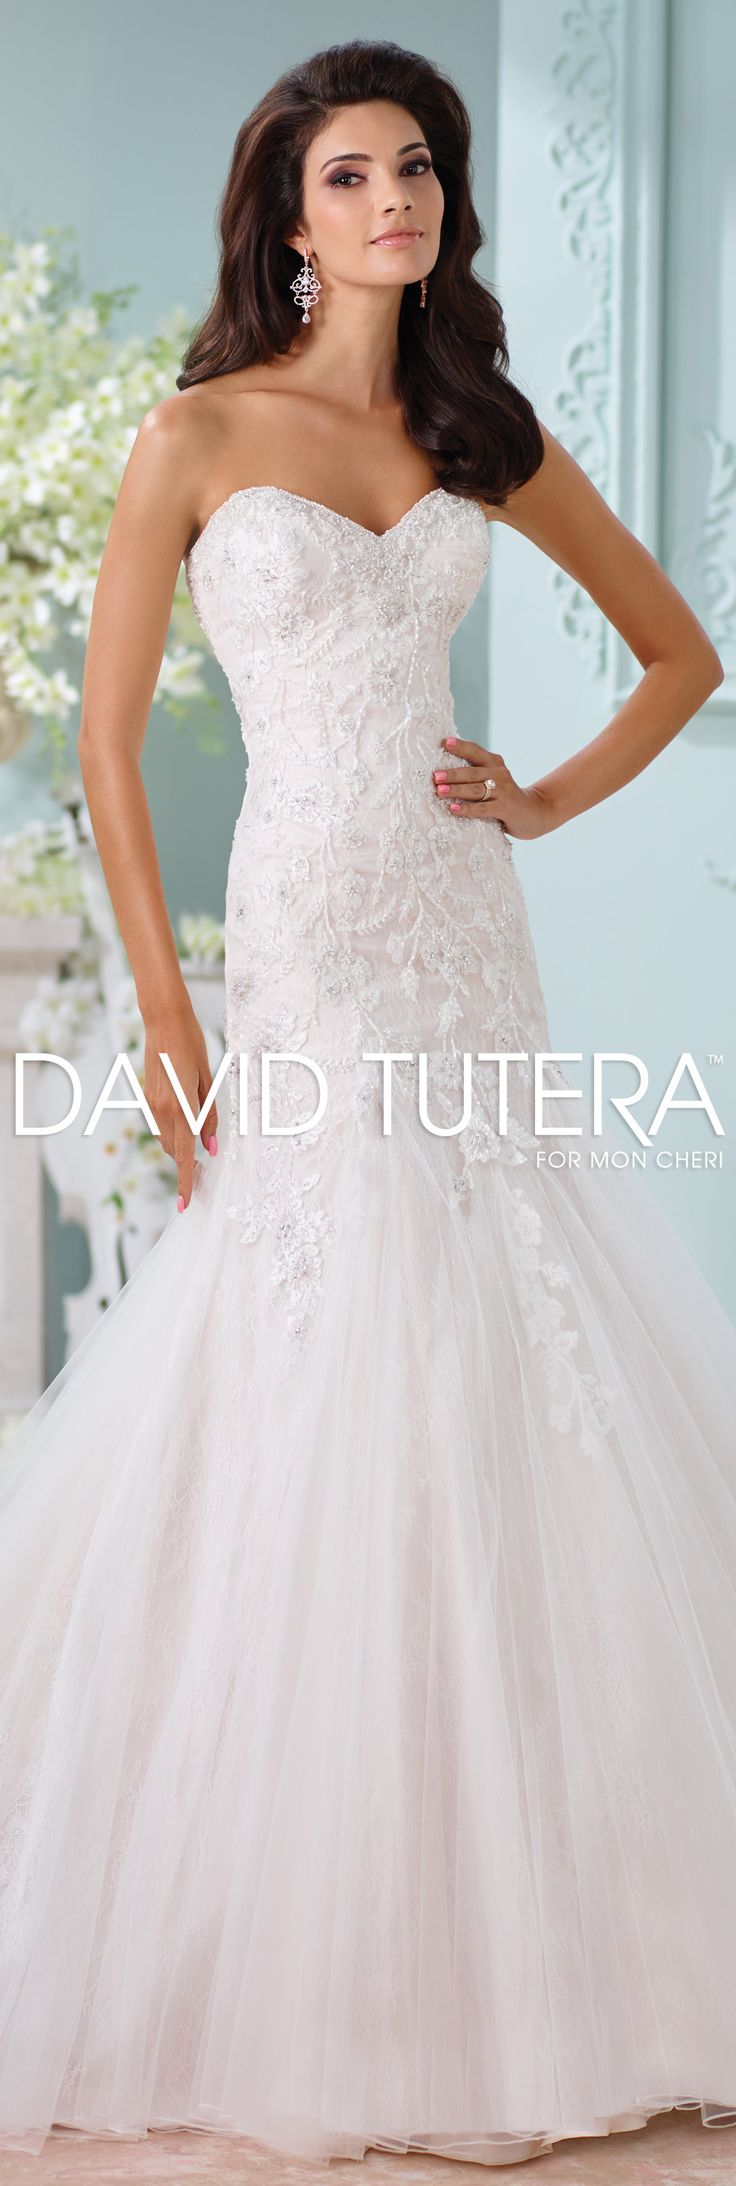 216 best david tutera for mon cheri images on pinterest for David tutera beach wedding dresses